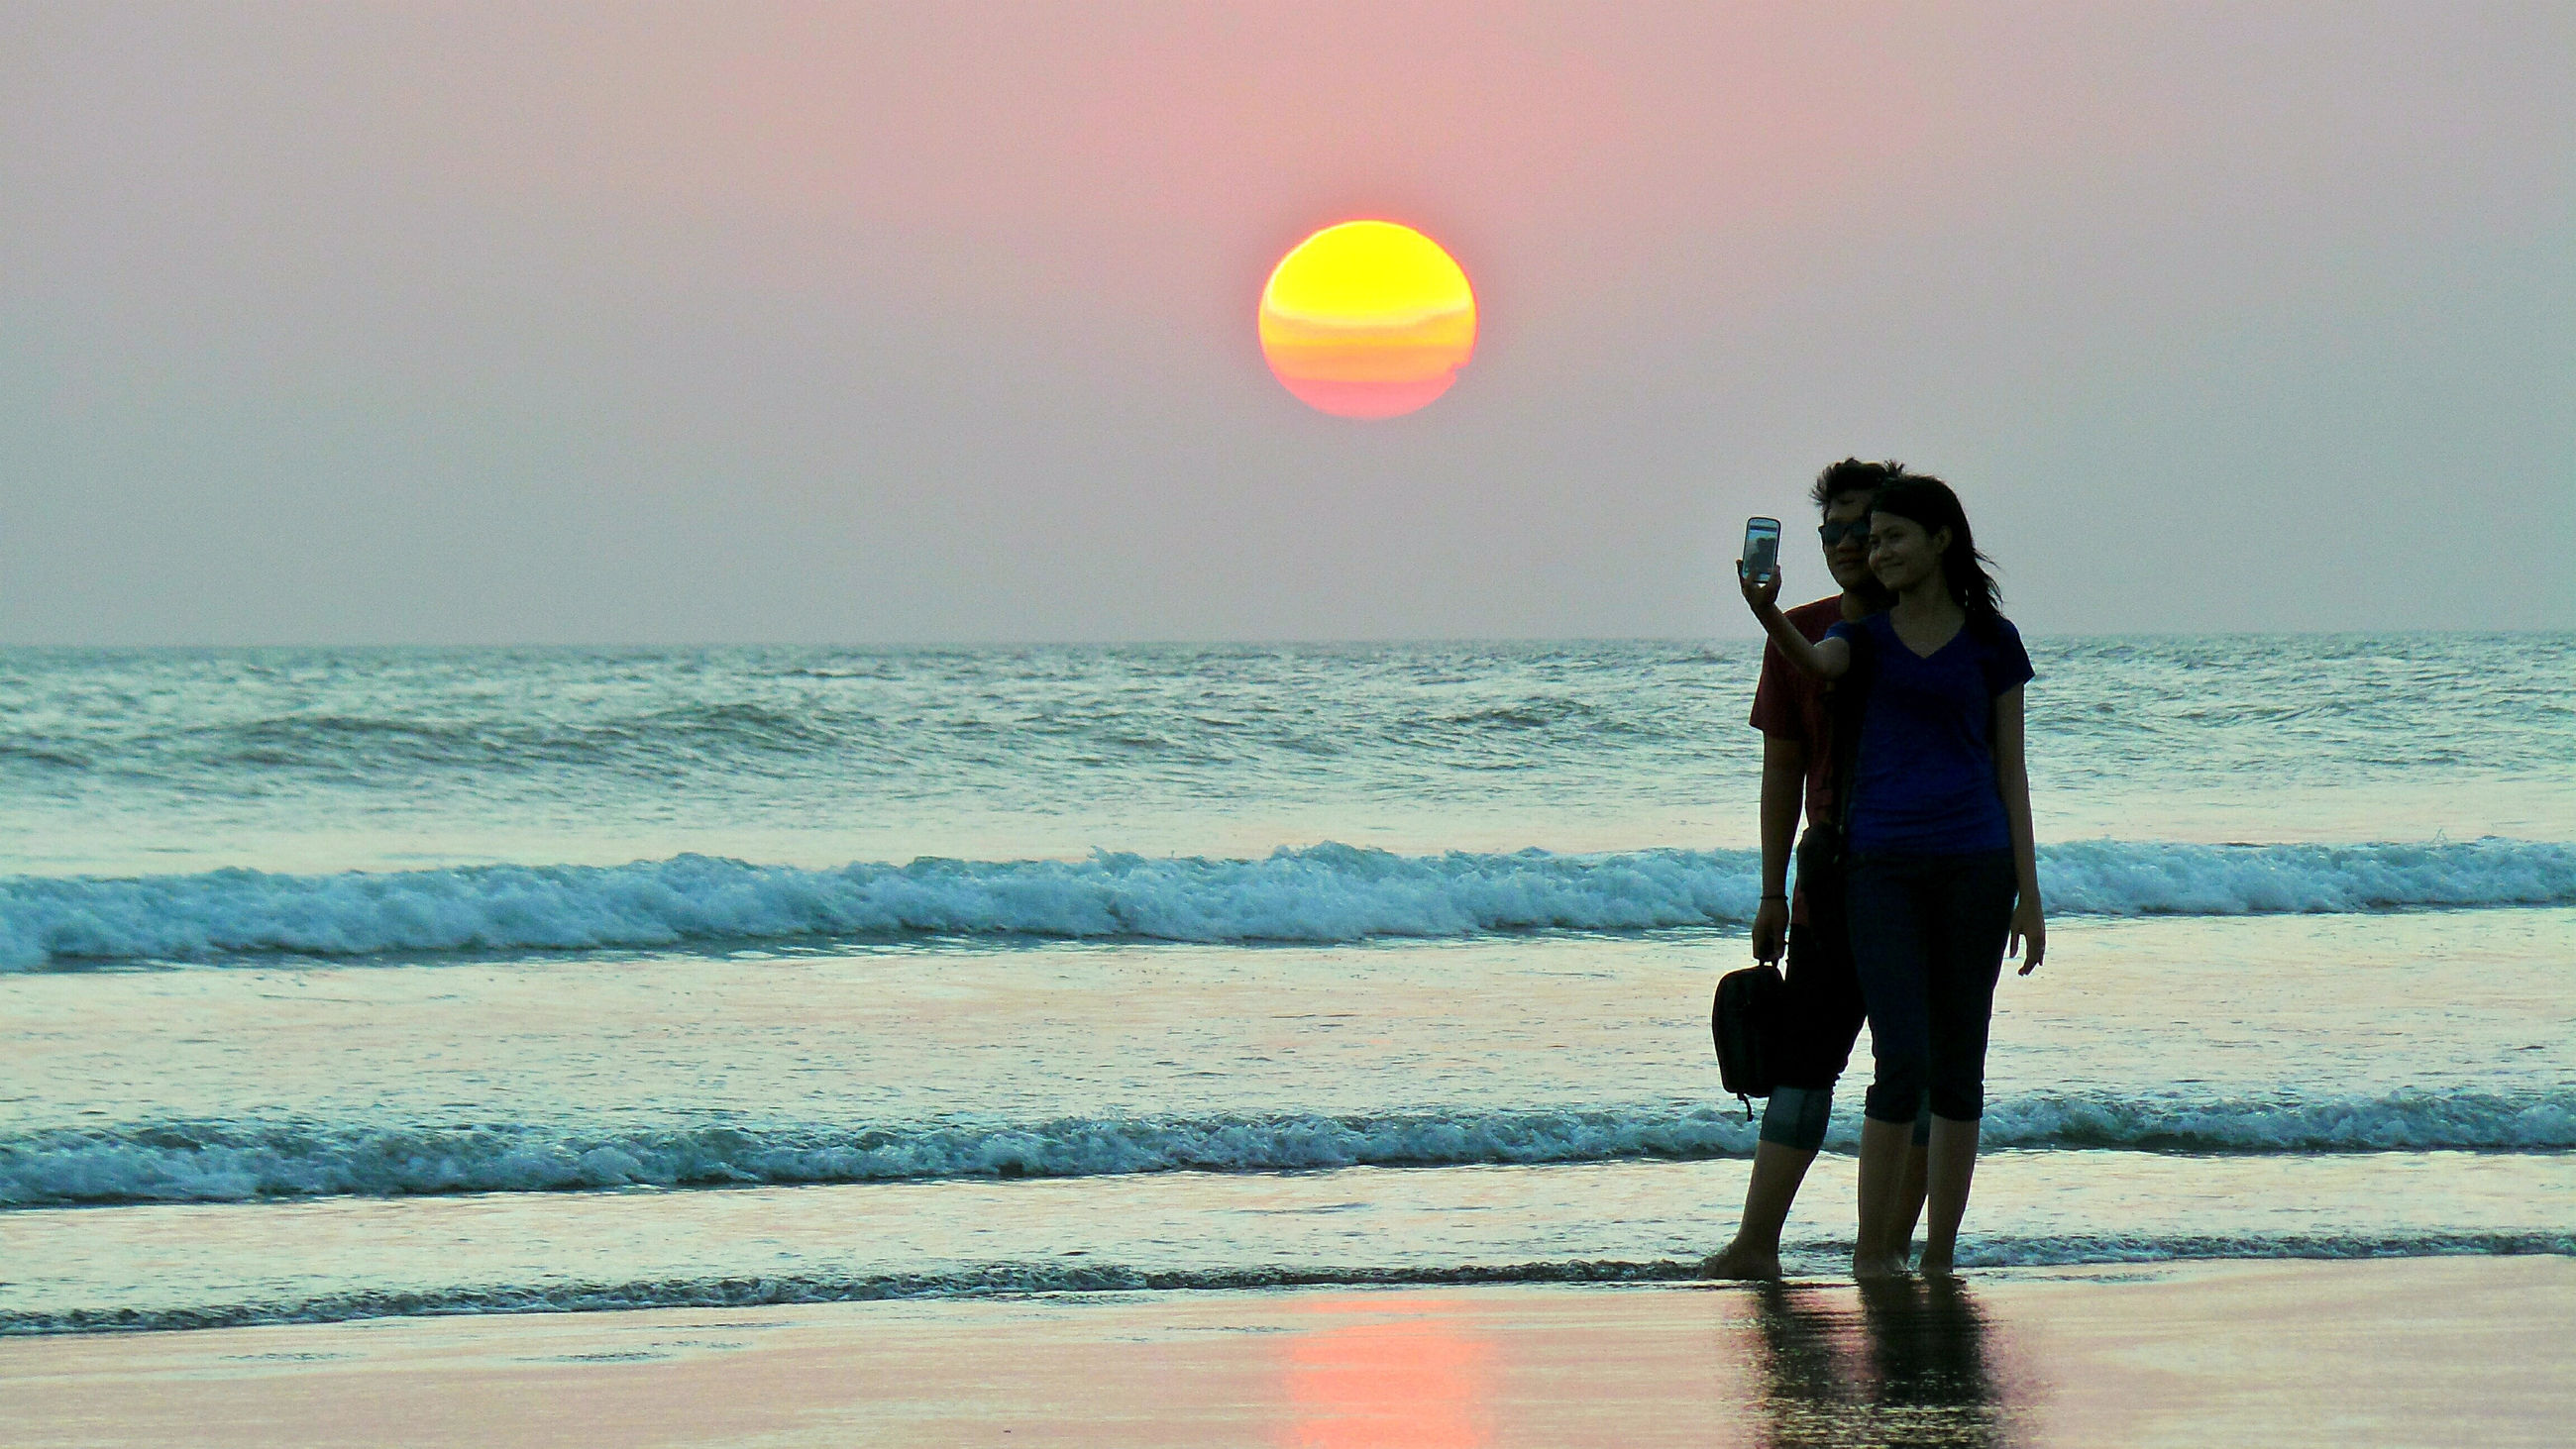 sea, water, beach, horizon, horizon over water, sky, two people, beauty in nature, leisure activity, sunset, real people, land, full length, standing, scenics - nature, wave, women, lifestyles, nature, couple - relationship, outdoors